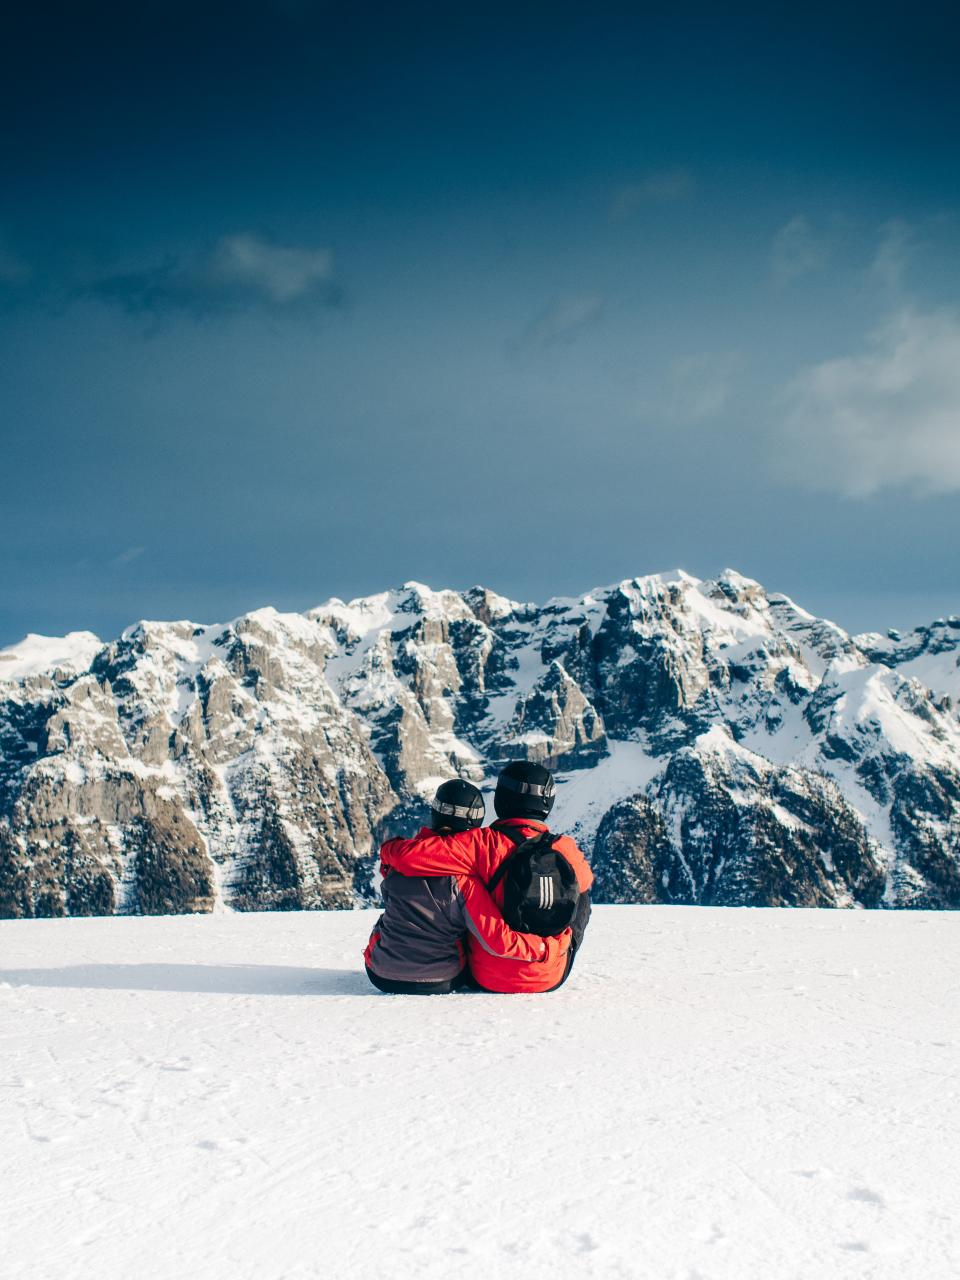 skiing, snowboarding, couple, love, romance, hugging, snow, mountains, peaks, sky, outdoors, nature, landscape